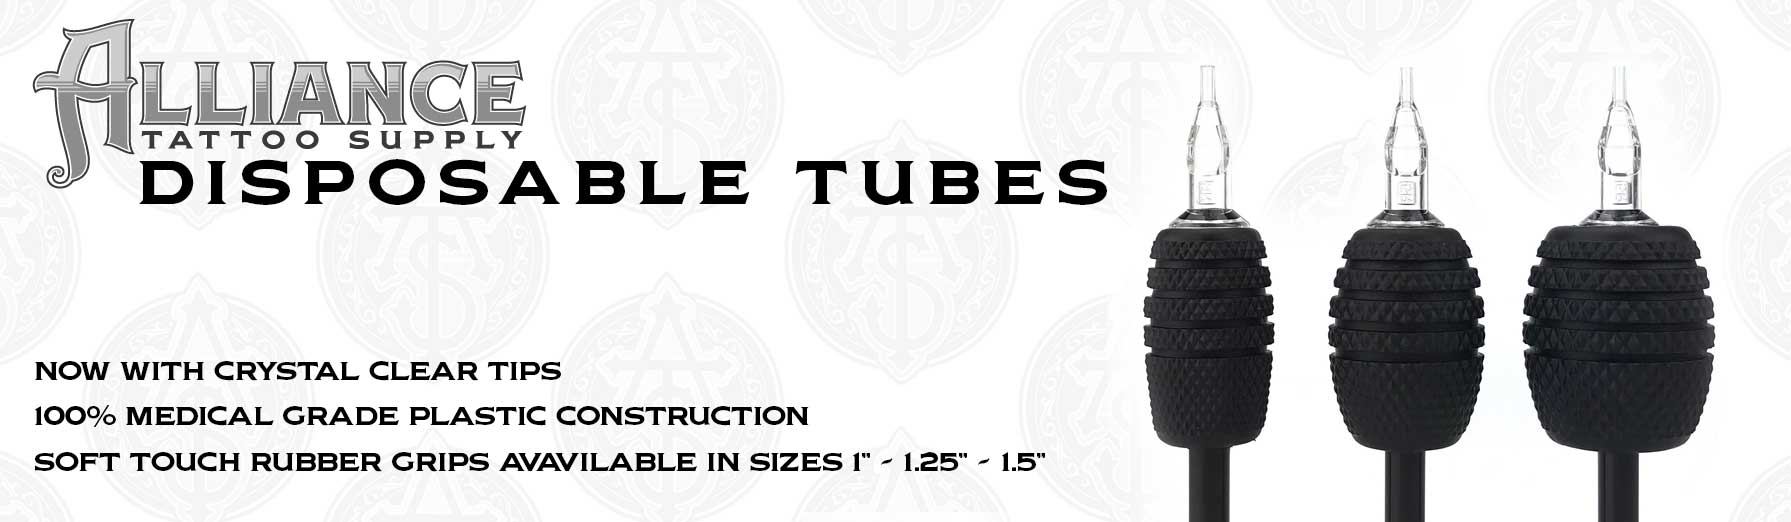 Alliance Tattoo Supply - Disposable Tubes